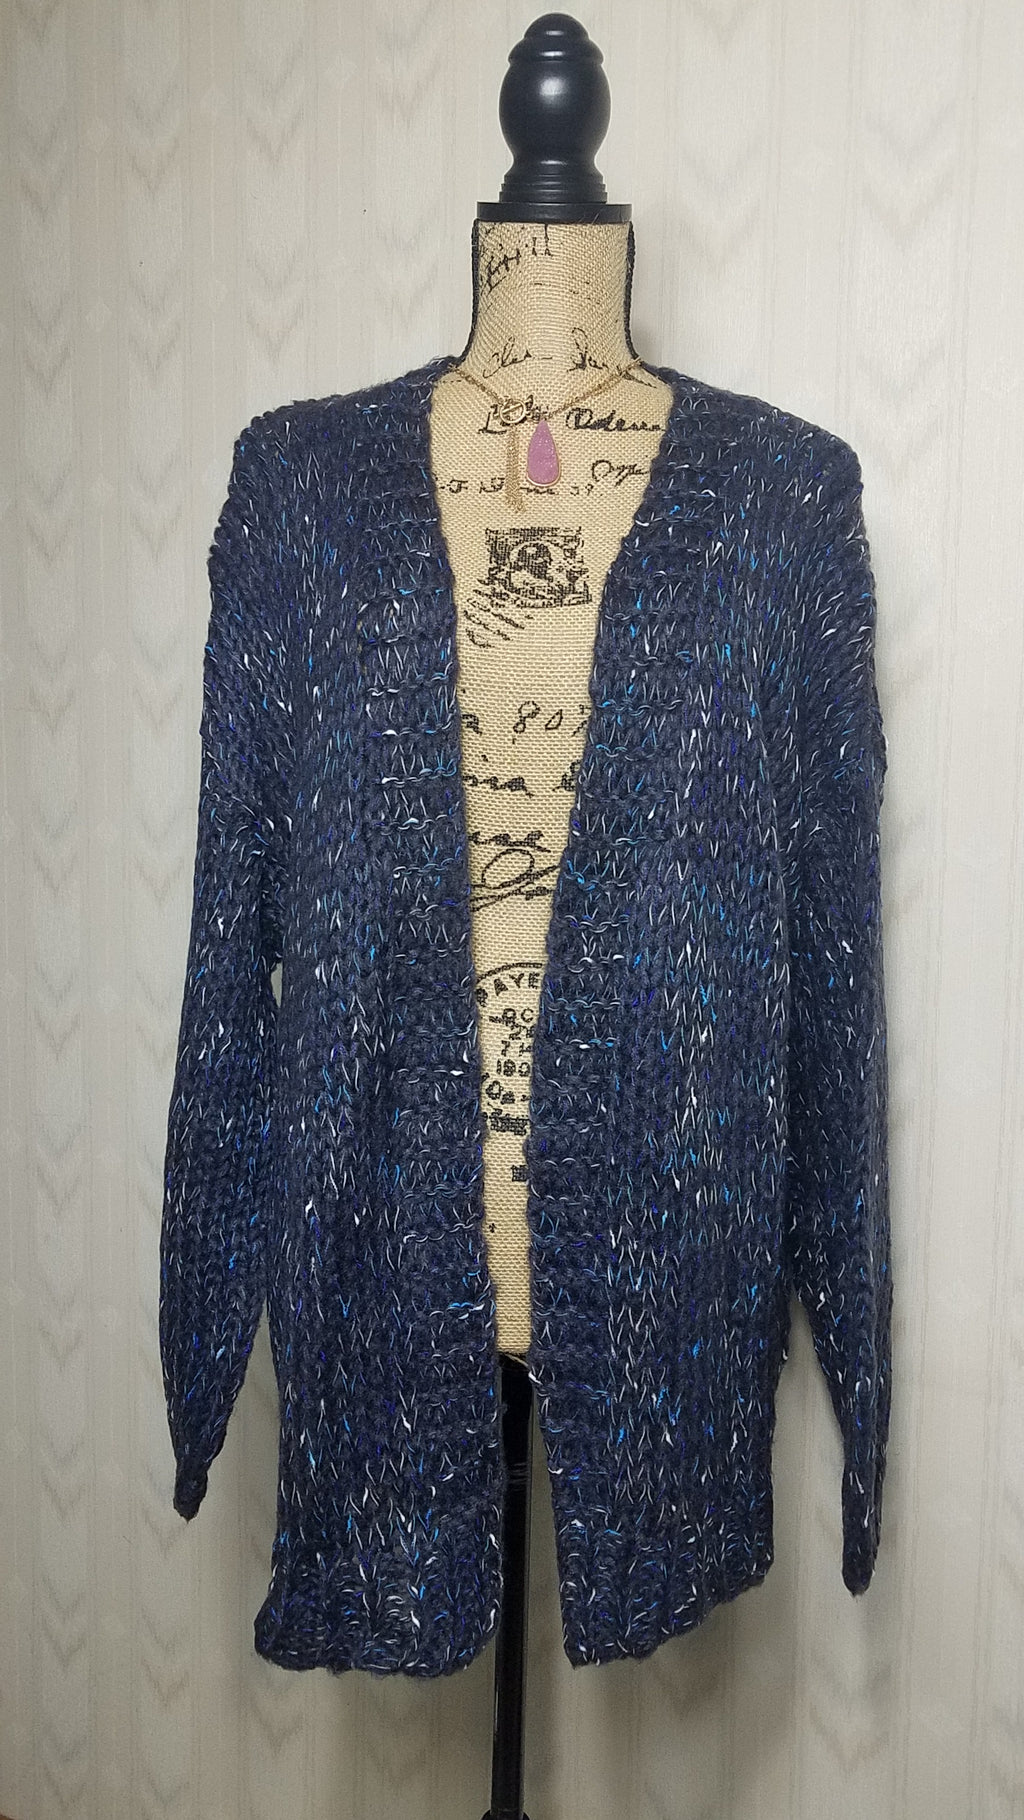 Kathy Speckled Navy Sweater Cardigan